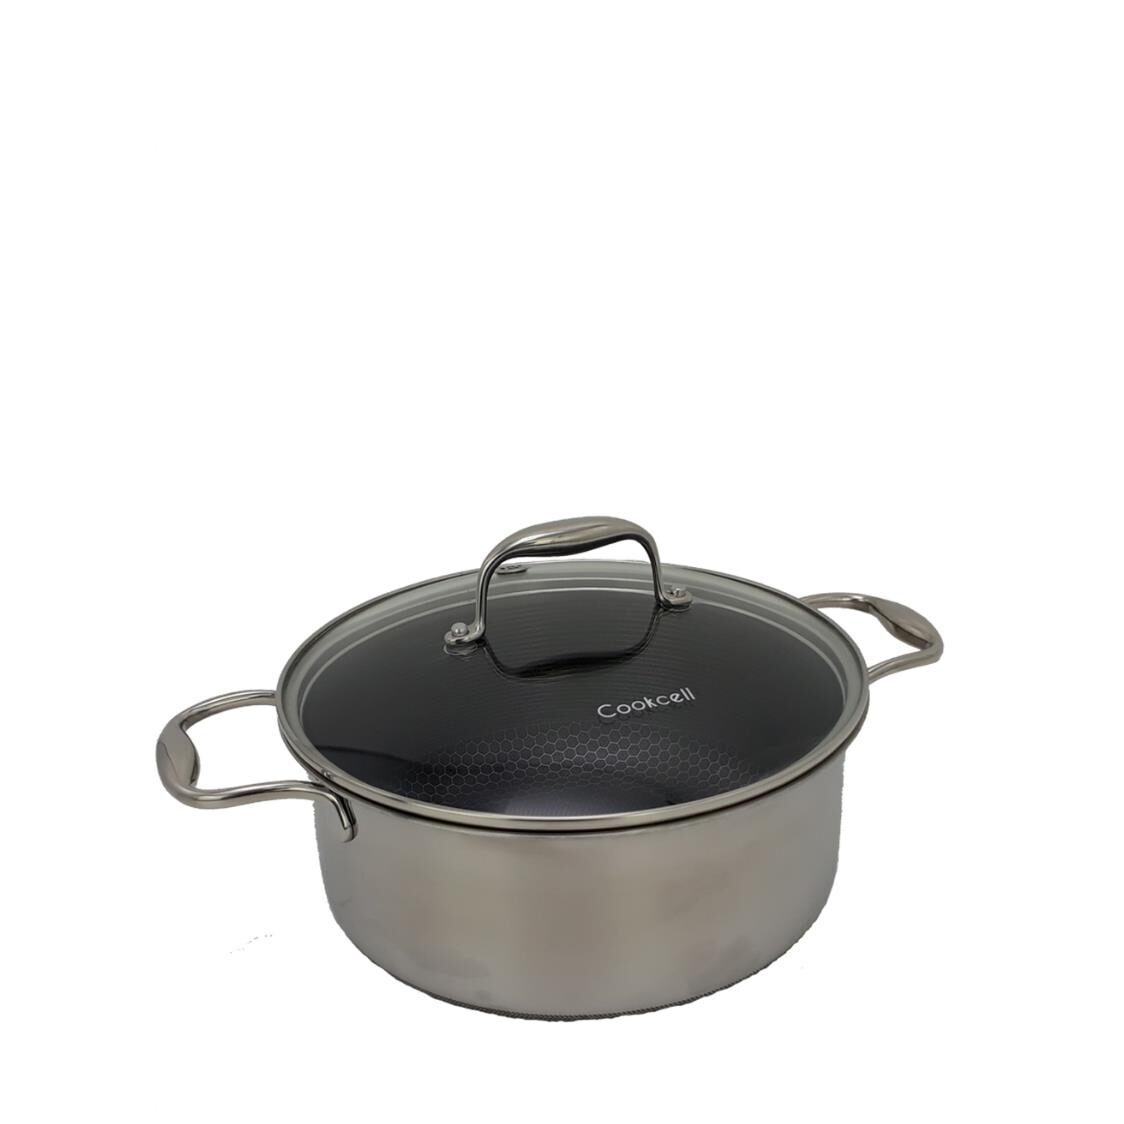 Cookcell Blackcube Casserole With Stainless Steel Rim Glass Lid 24cm